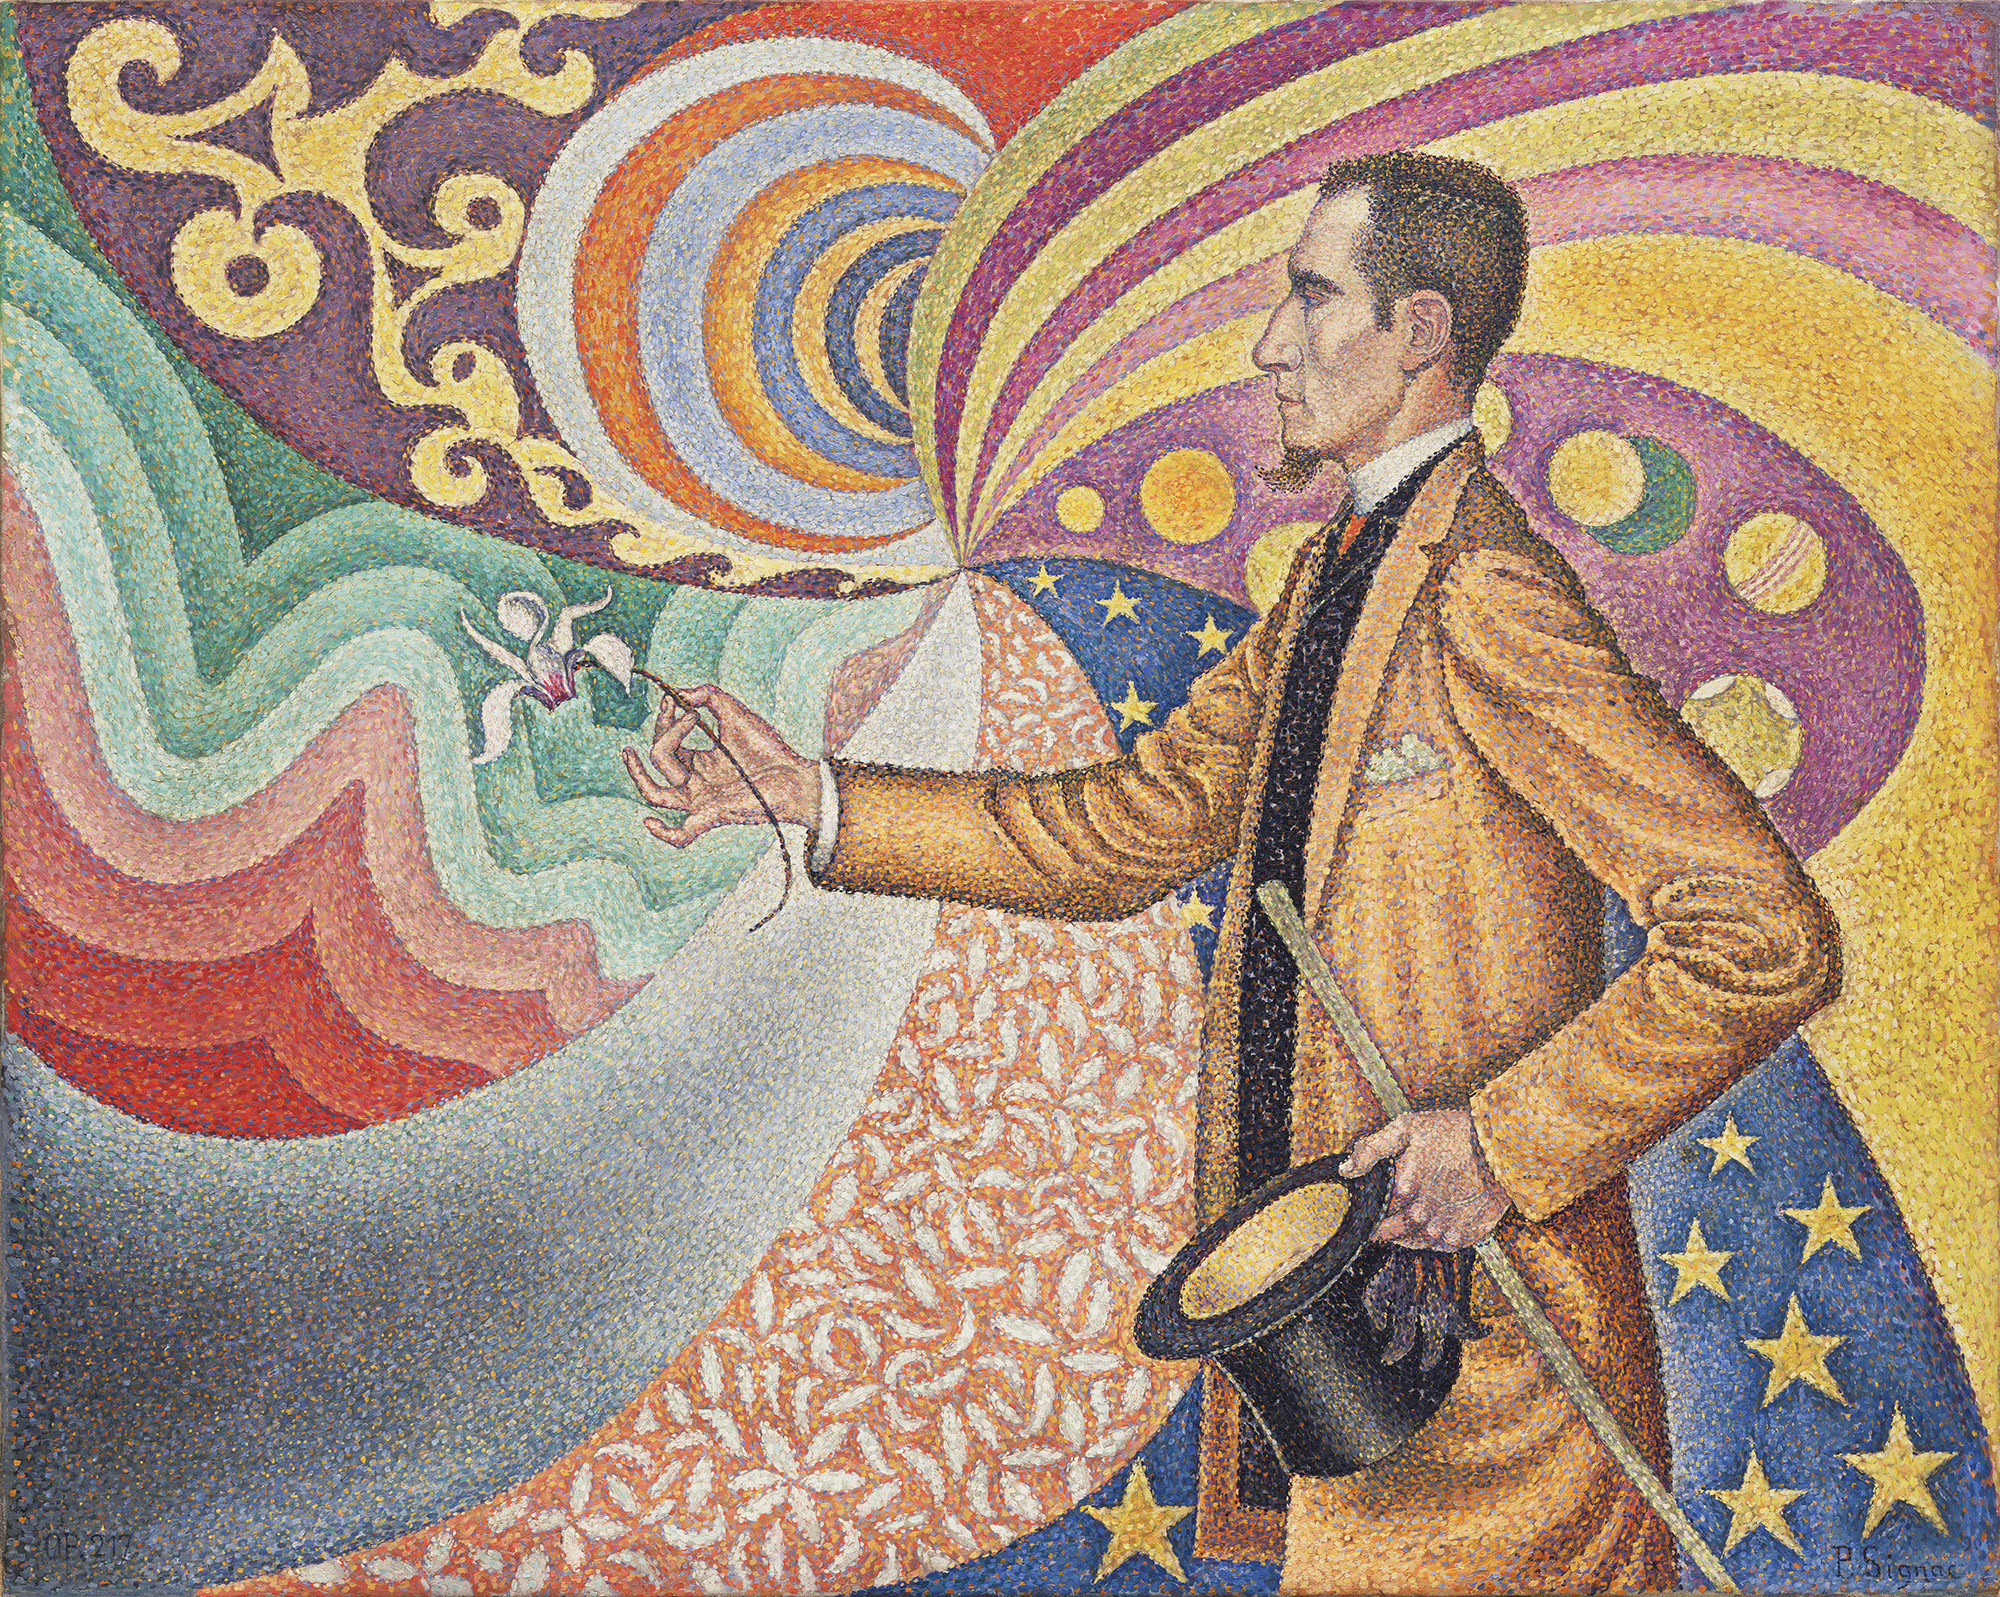 "Paul Signac. Opus 217. Against the Enamel of a Background Rhythmic with Beats and Angles, Tones, and Tints, Portrait of M. Félix Fénéon in 1890. 1890. Oil on canvas, 29 x 36 1/2"" (73.5 x 92.5 cm). Fractional gift of Mr. and Mrs. David Rockefeller. © 2009 Artists Rights Society (ARS), New York/ADAGP, Paris"